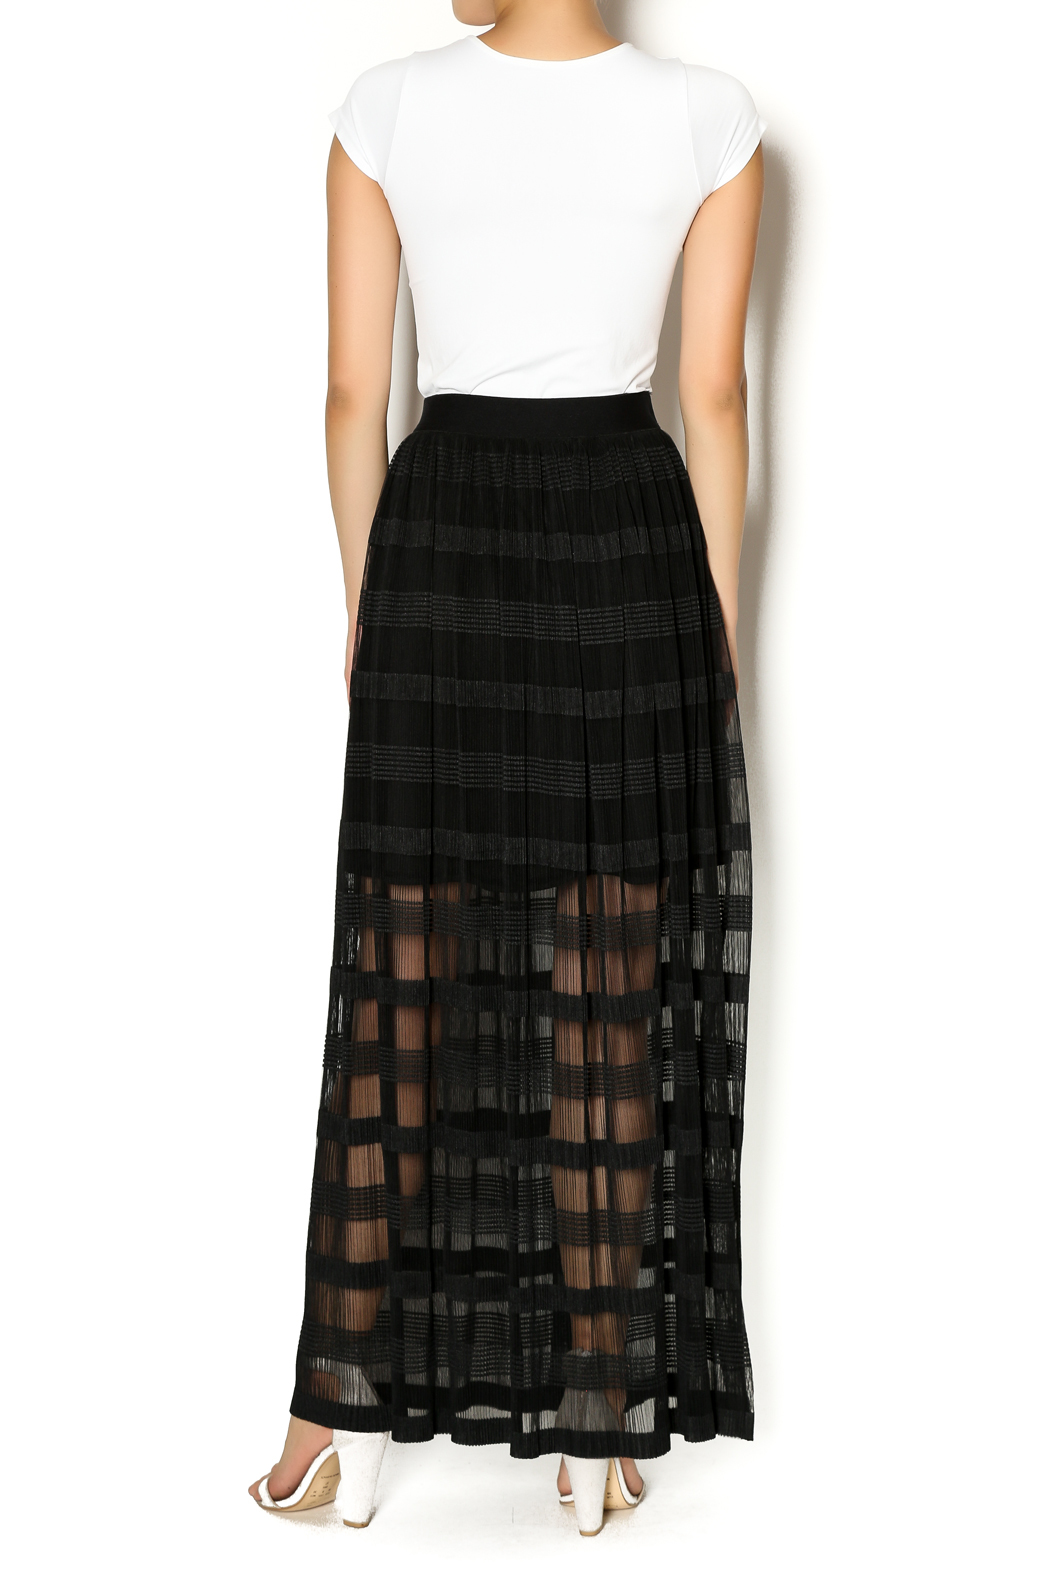 Insight New York Black Maxi Skirt - Side Cropped Image